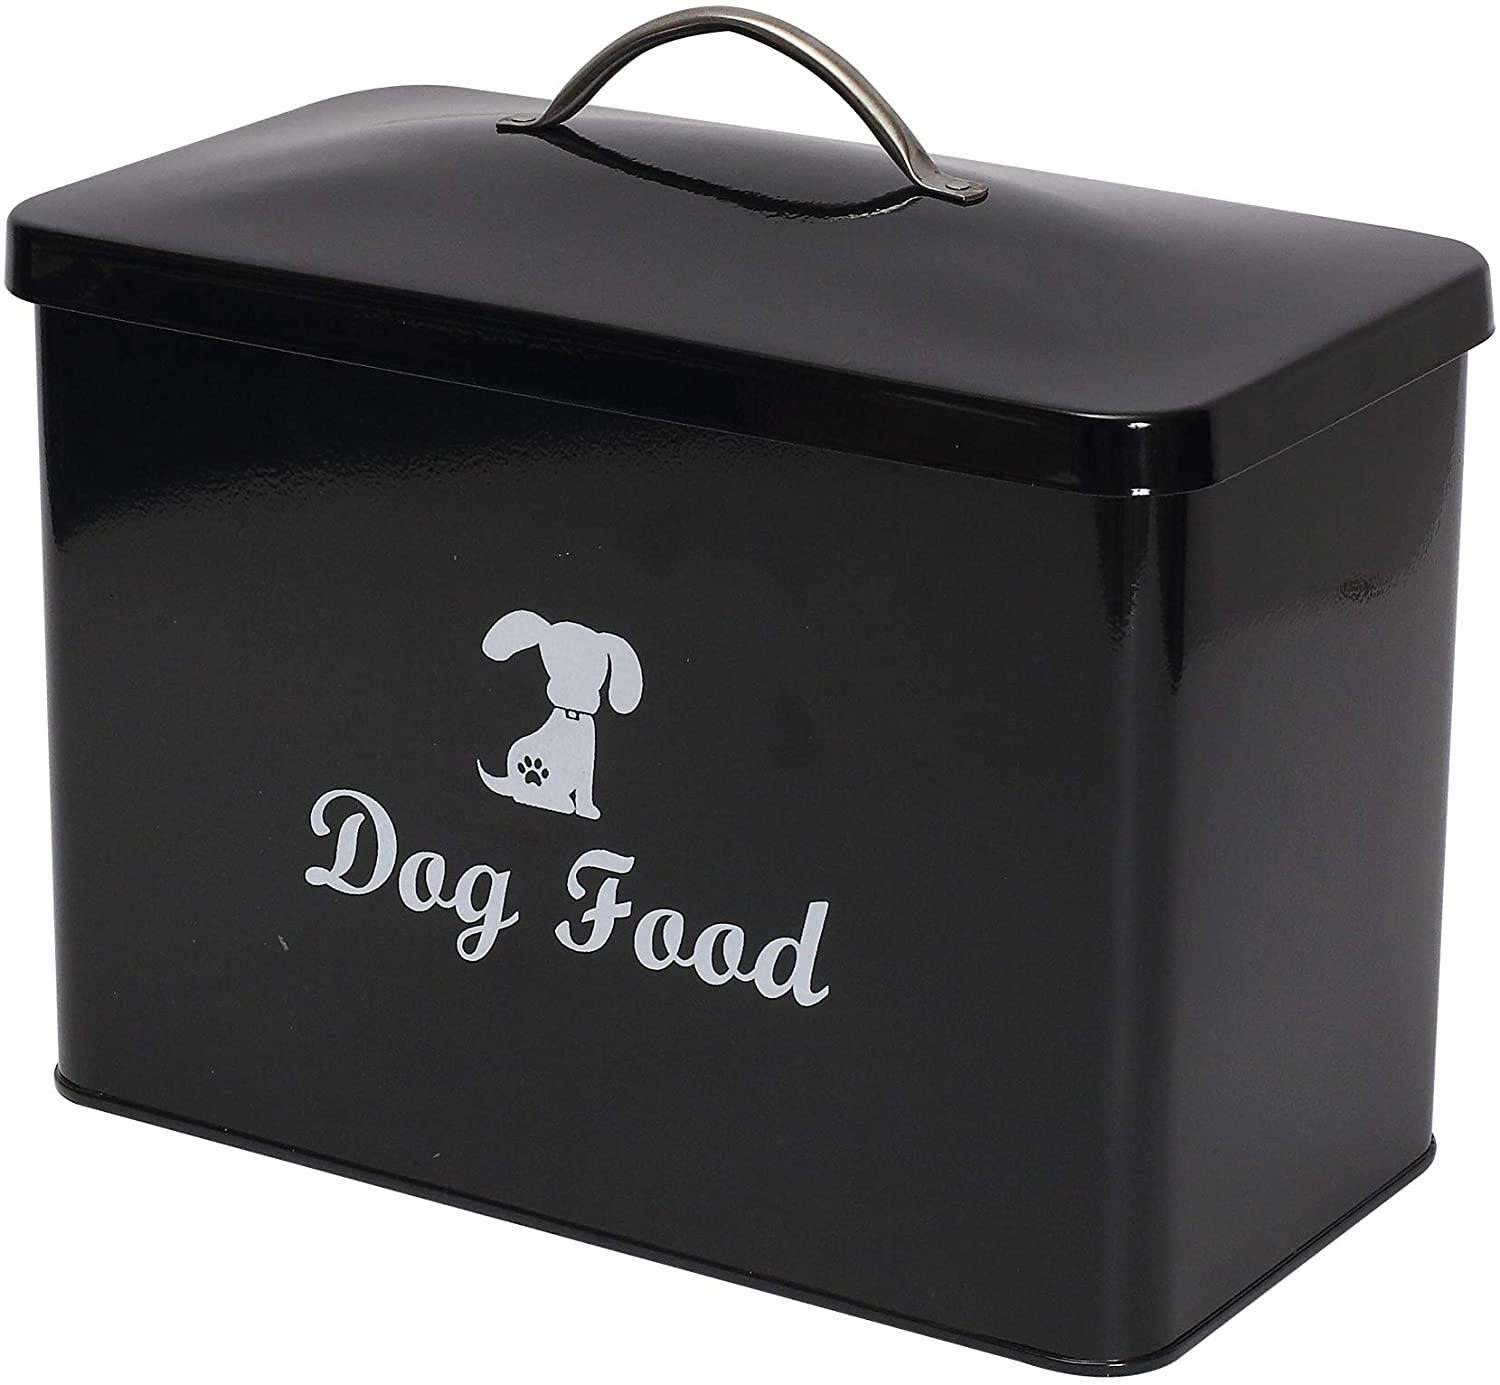 Geyecete Dog Food Dog Container Treat Storage Tin with Lid and Spoon-Countertop Space-Saving Dog Treat jar pet Food Container